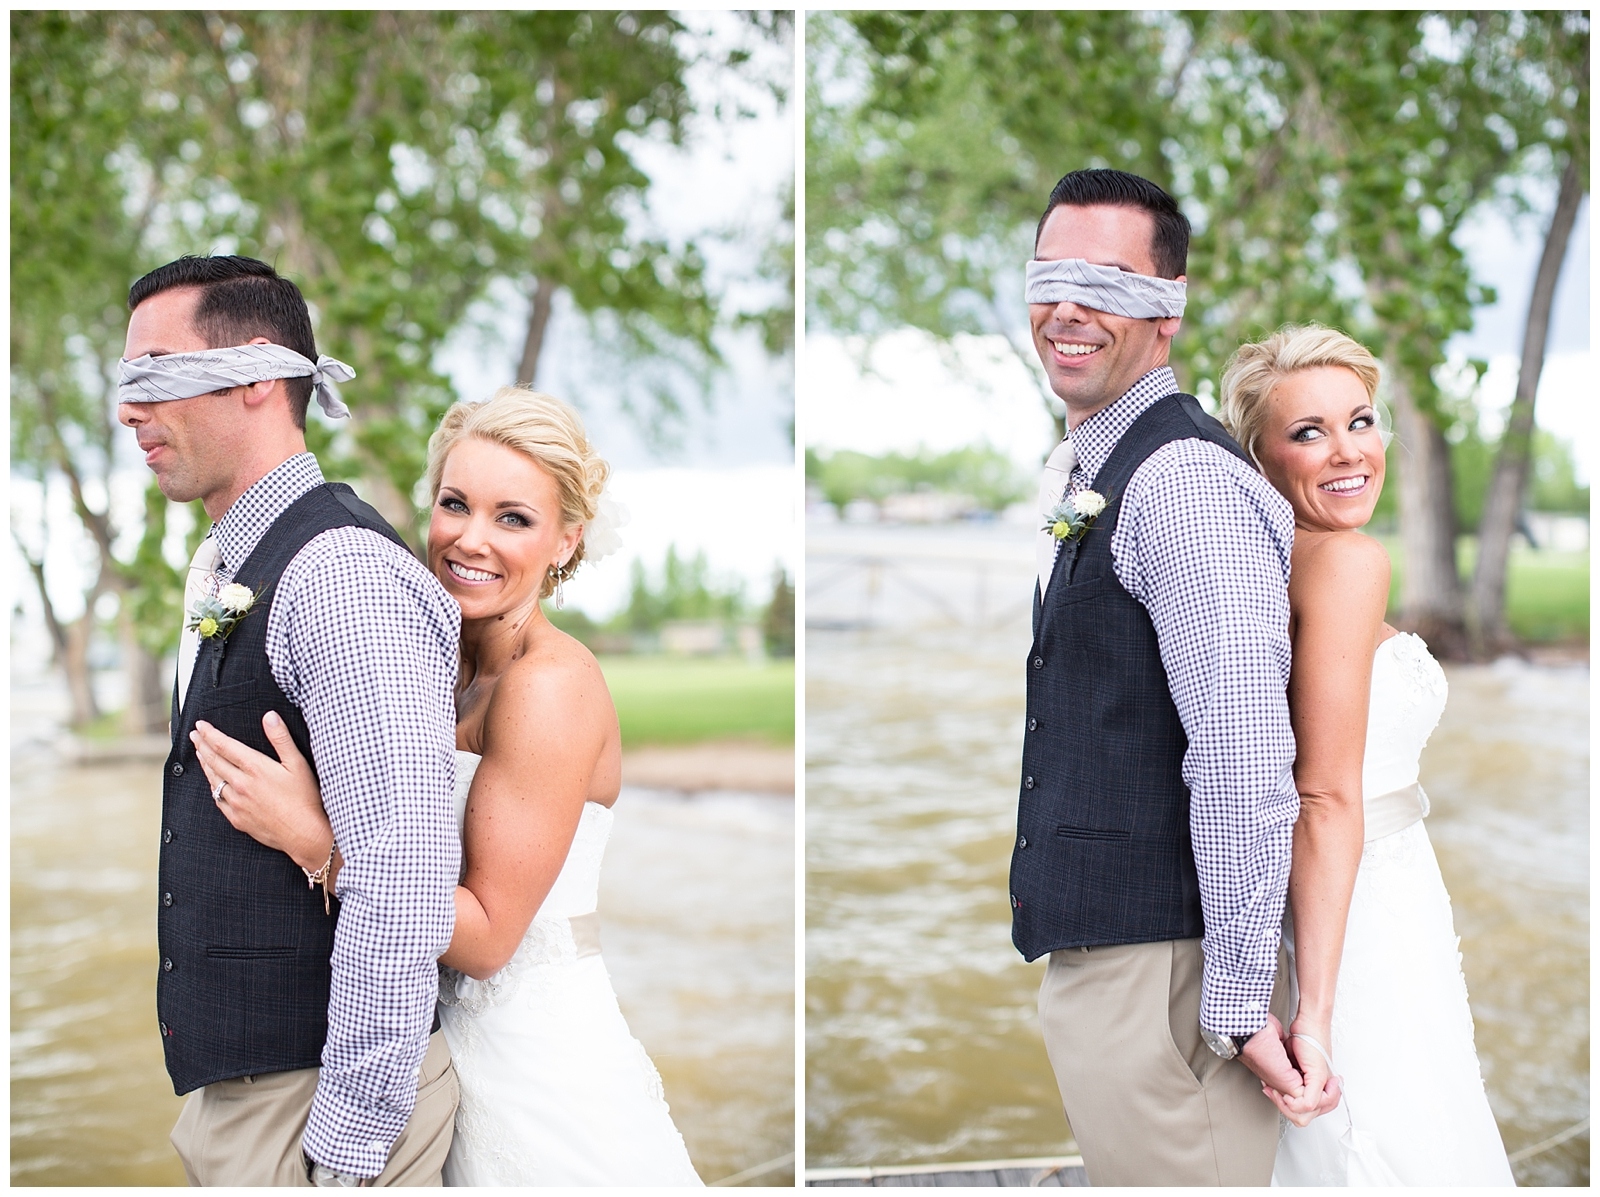 houstonweddingphotography_0221.jpg